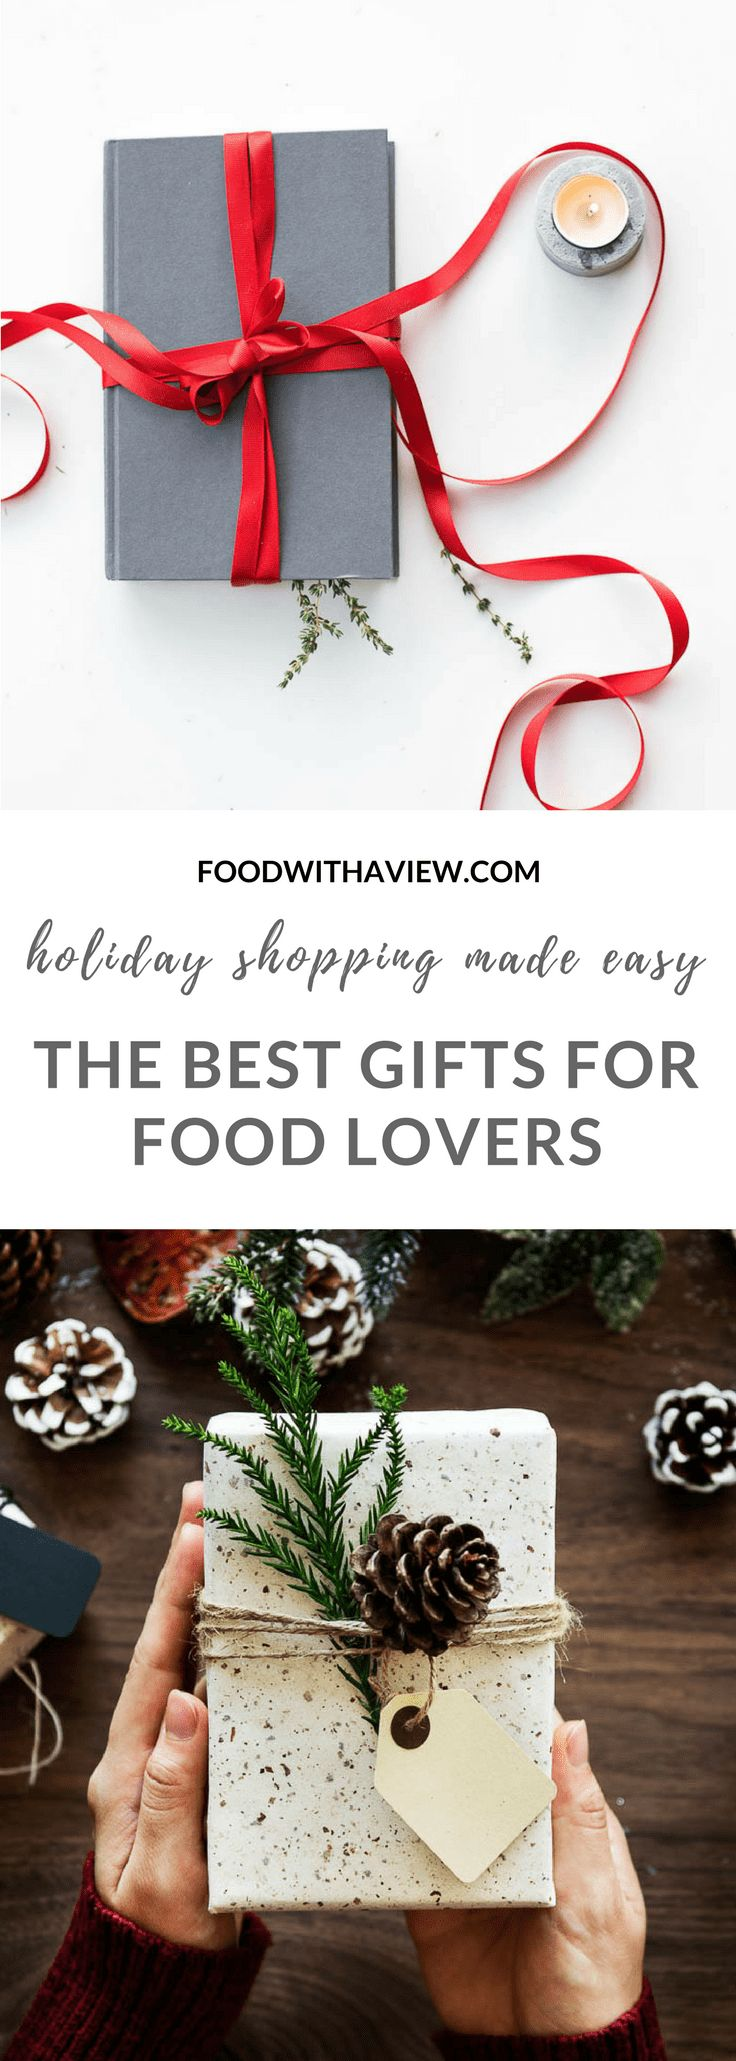 Holiday gifts for food lovers on foodwithaview.com